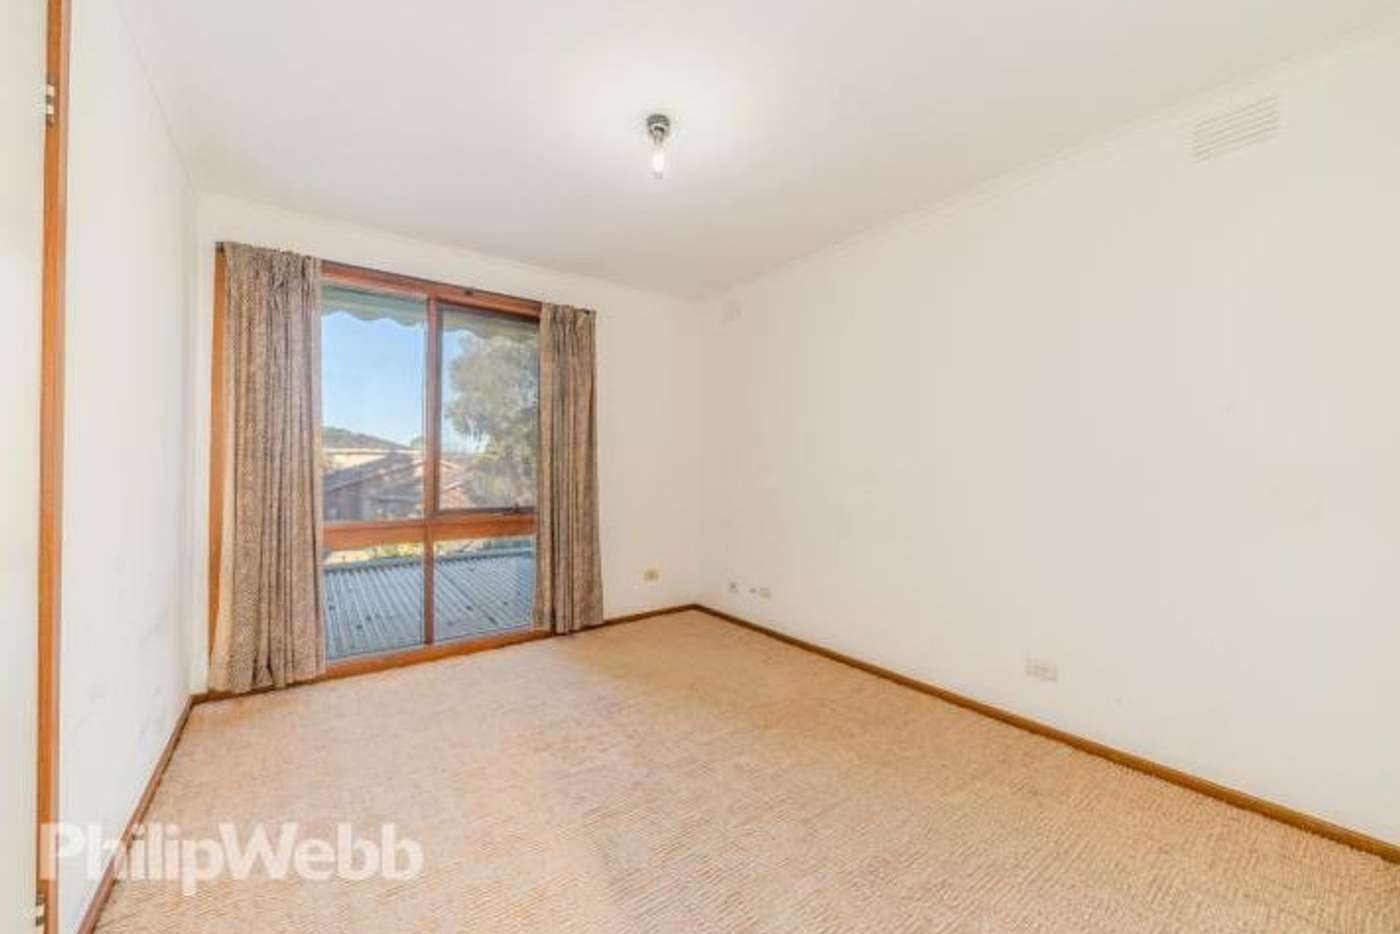 Sixth view of Homely townhouse listing, 11/30 Thomas Street, Doncaster East VIC 3109